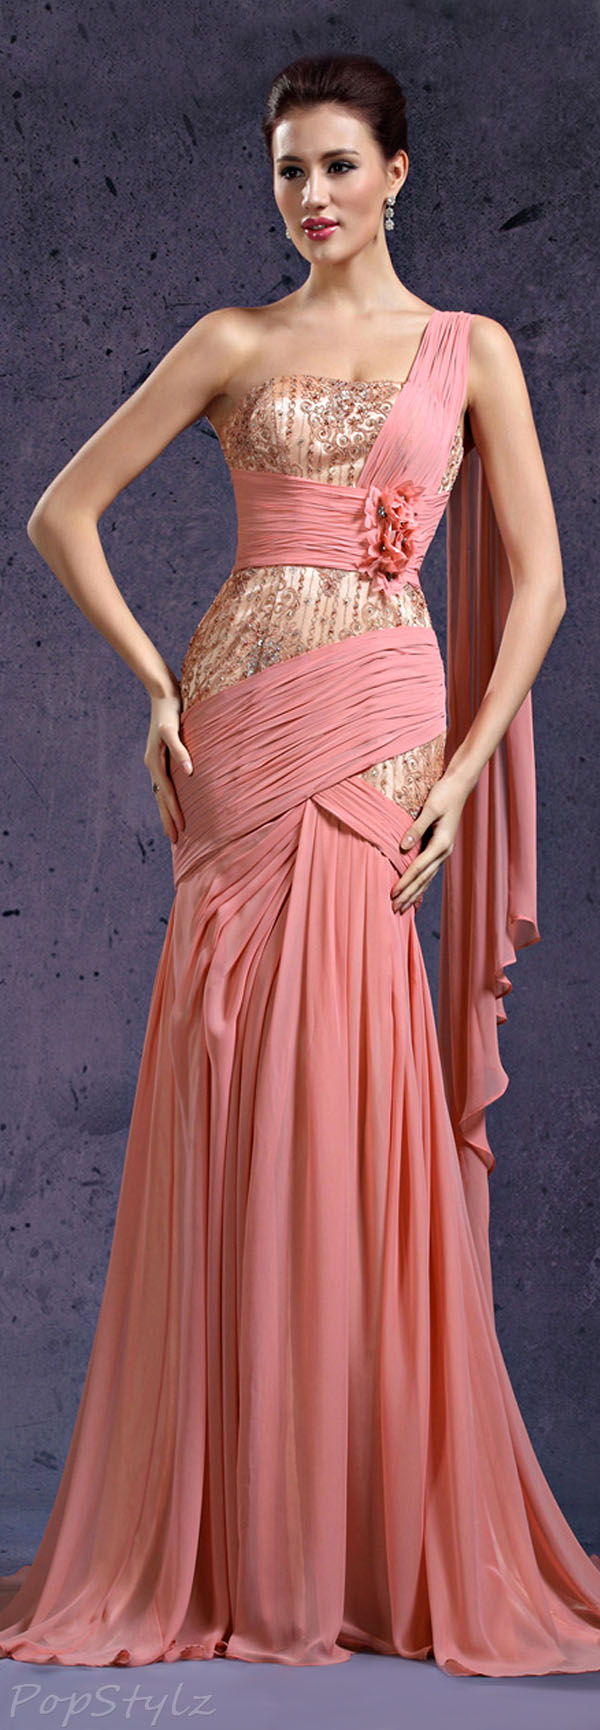 eDressit 02131601 Evening Gown